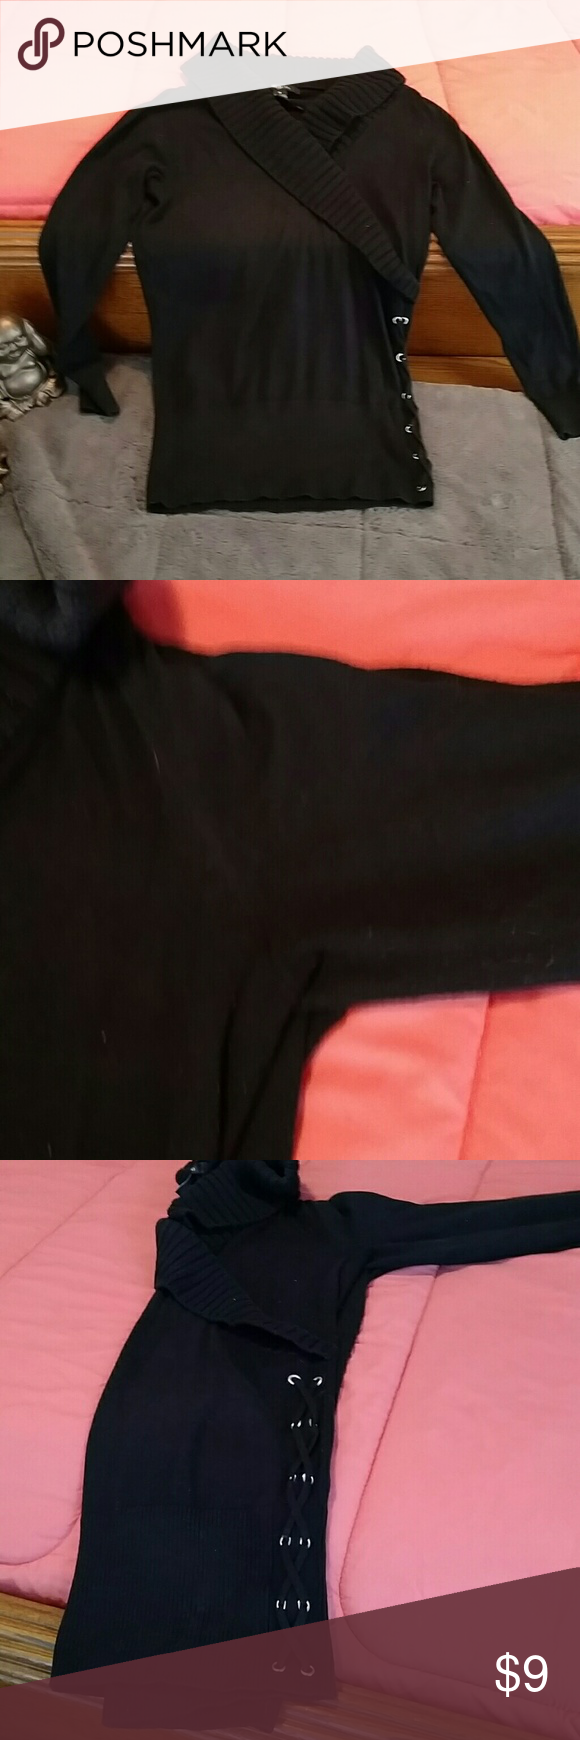 Black sweater with lacing detail on the side | Lace detail ...